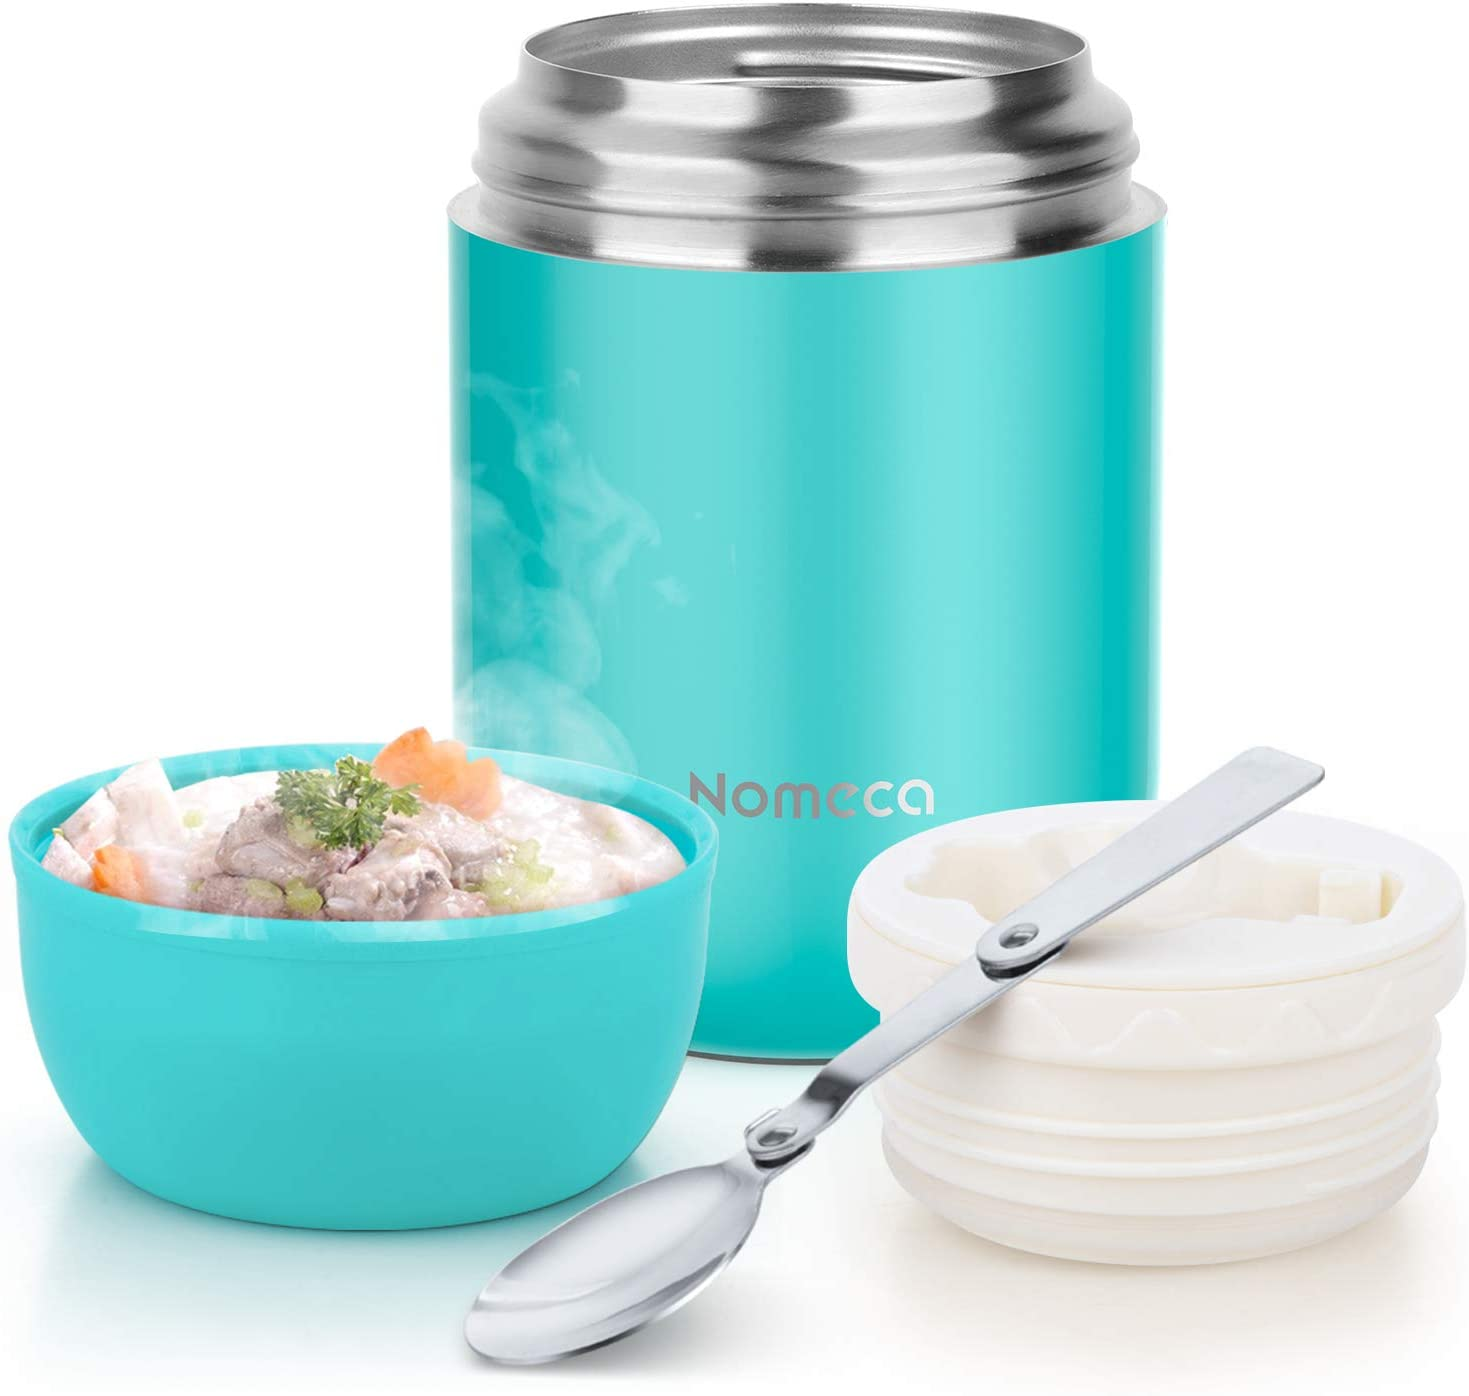 Hot Containers for Credence San Francisco Mall Kids Lunch Box Mouth Food Keep Wide - Drinks